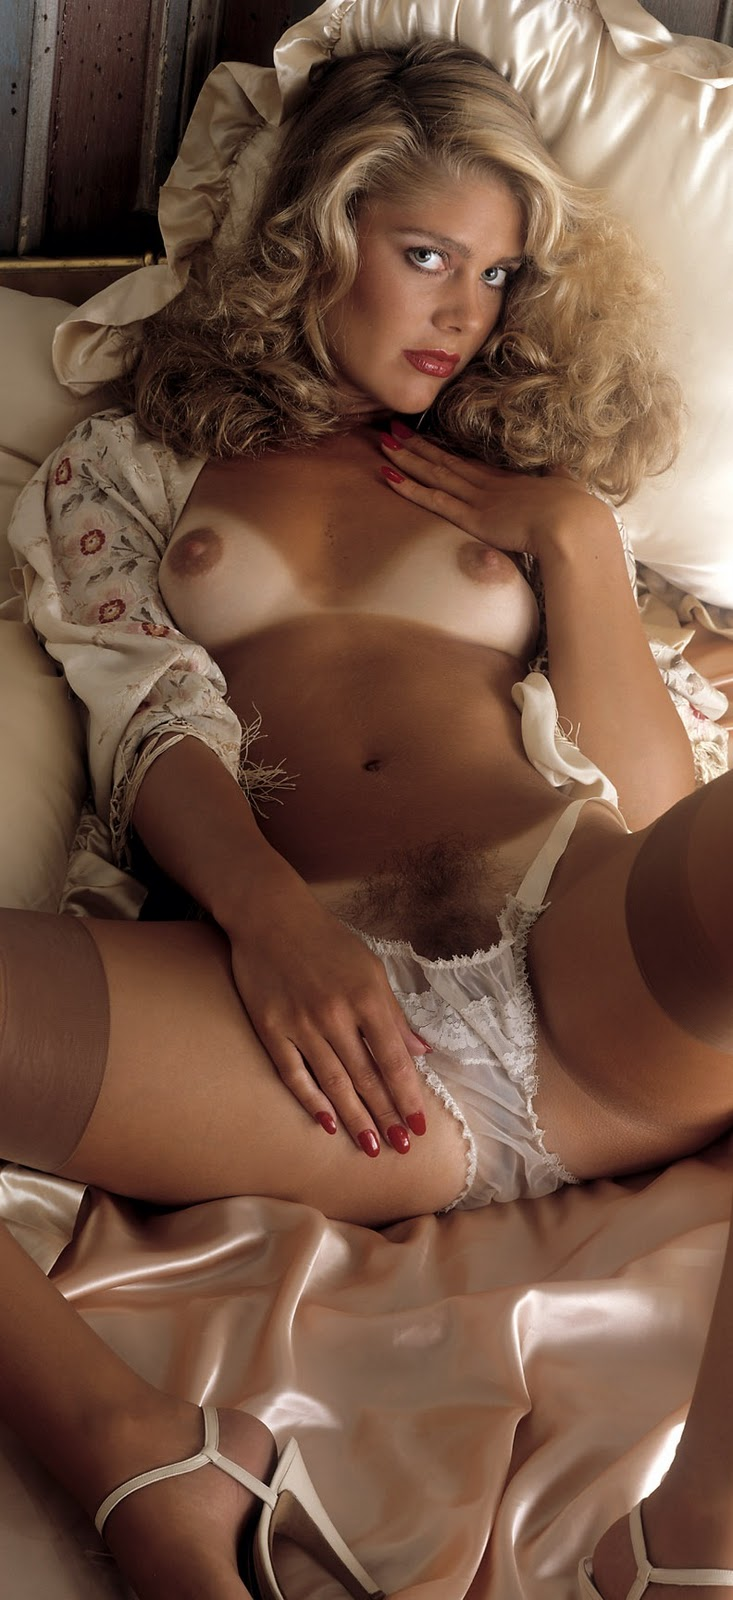 best of playboy nudes